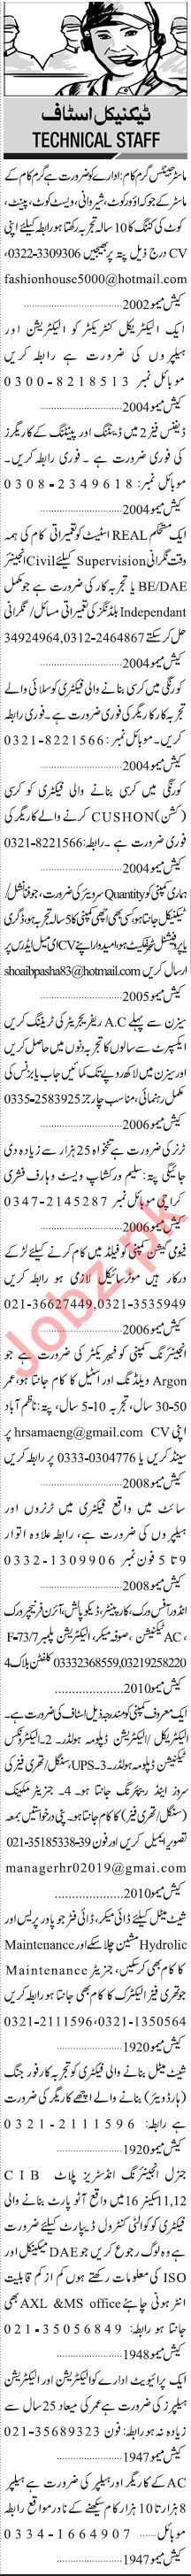 Jang Sunday Classified Ads 19 Jan 2020 for Technical Staff